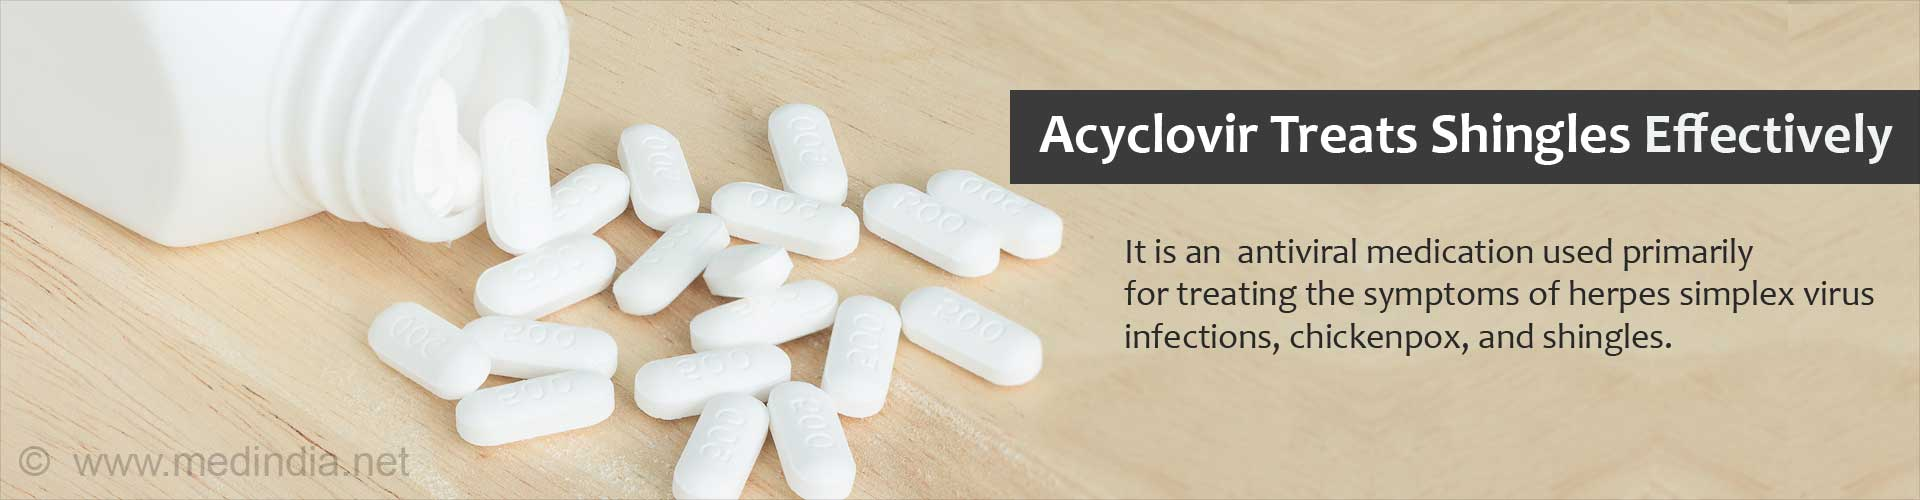 Acyclovir treats shingles effectively